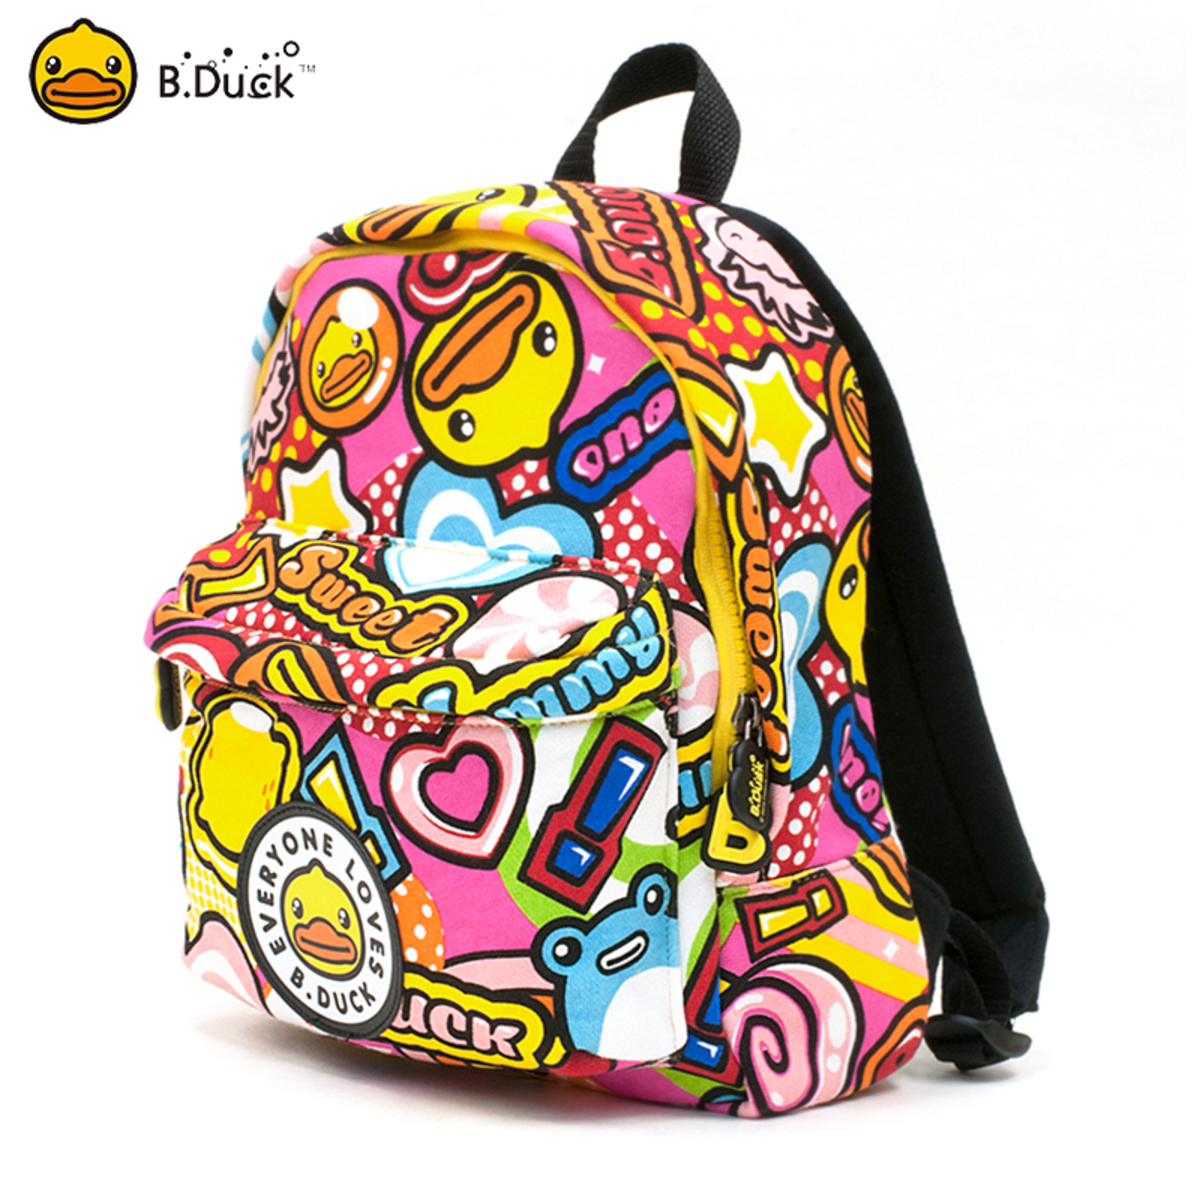 B.Duck Kids Backpack (Candy)